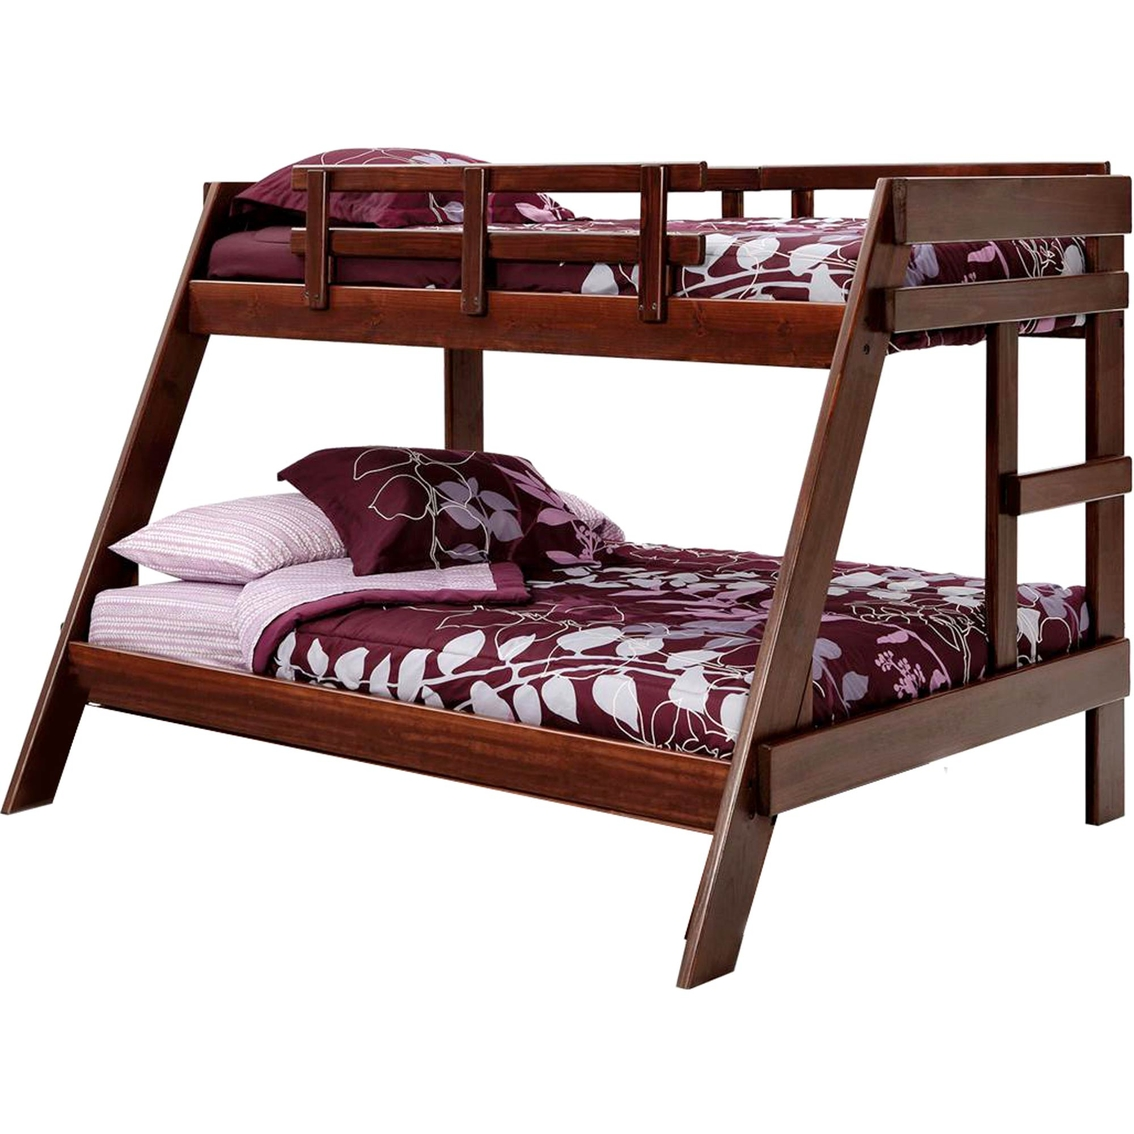 Chelsea home furniture twin over full a frame bunk dark for Hometown furniture exchange